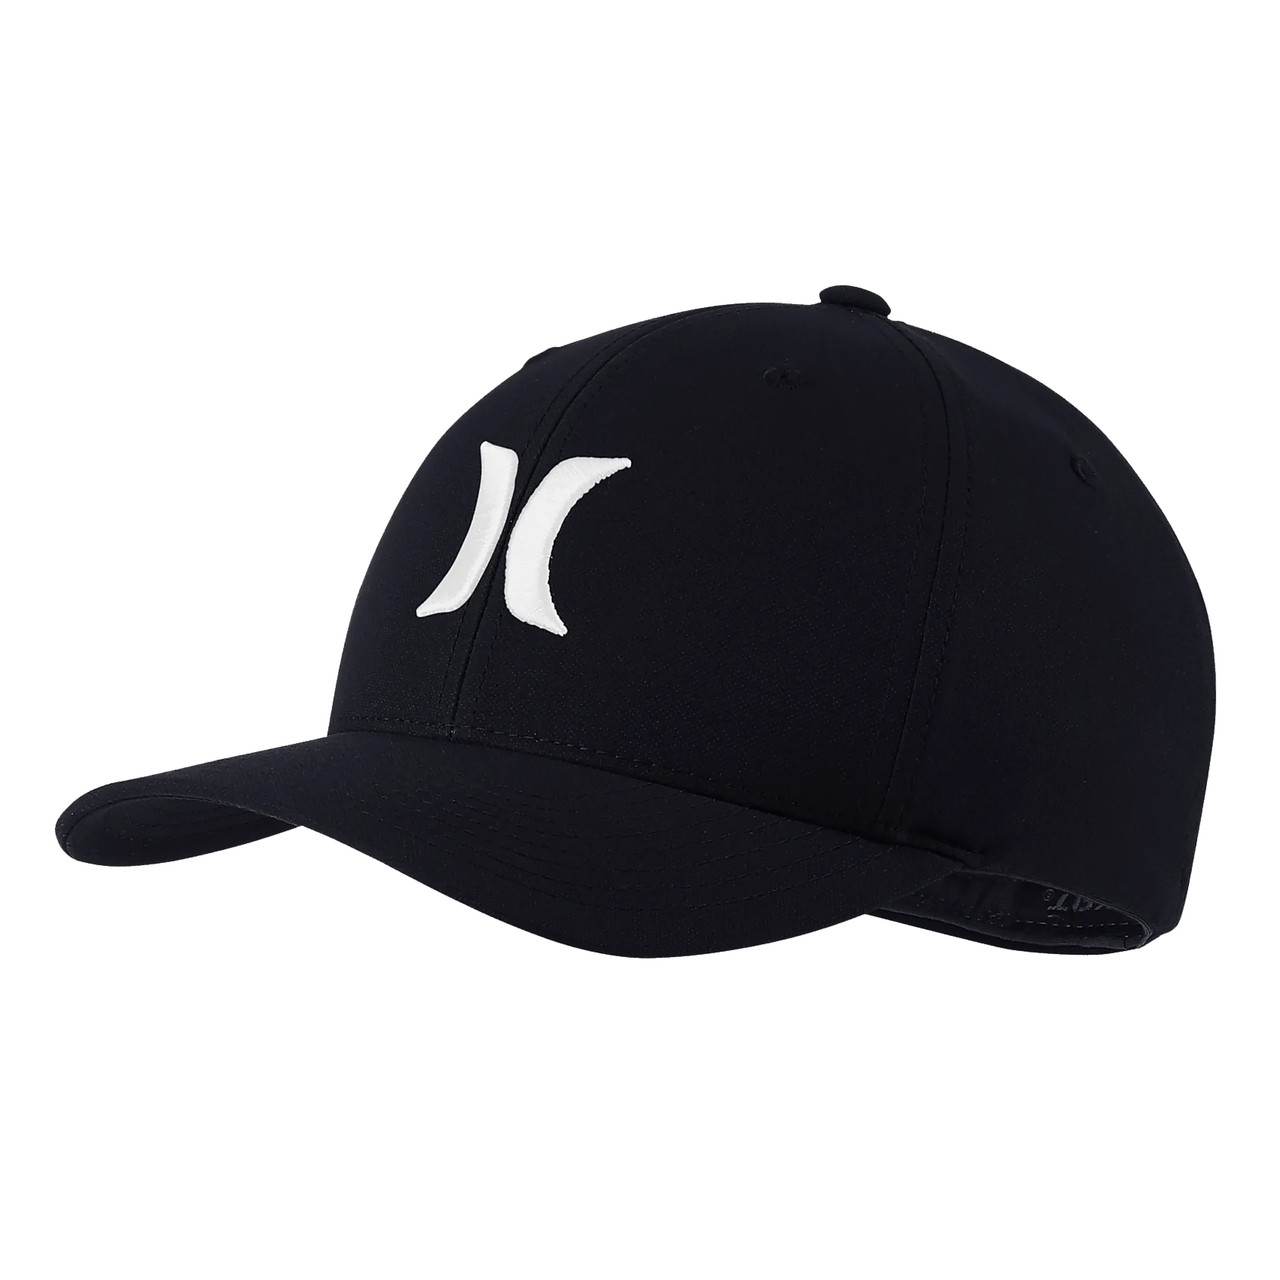 outlet store 952e4 2577f Hurley Hat - One and Only Dri-Fit - Black White